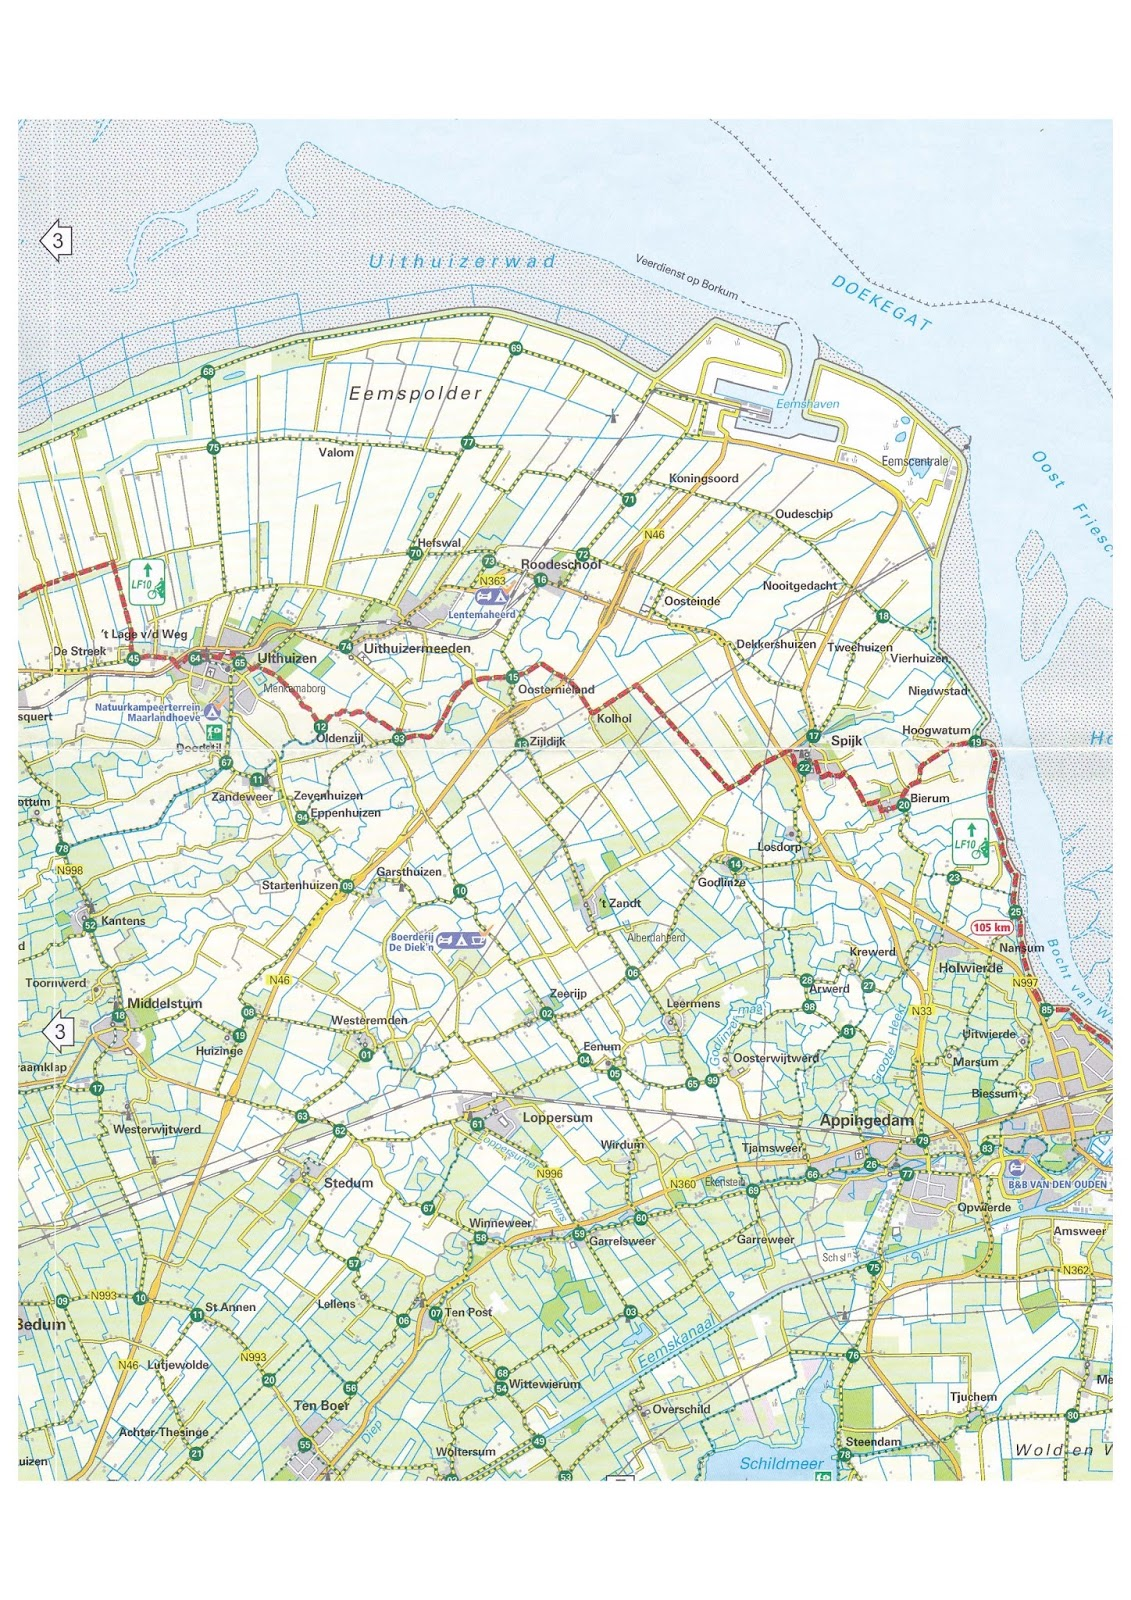 Netherlands Bikeways Guidebook research V the highlands of Groningen